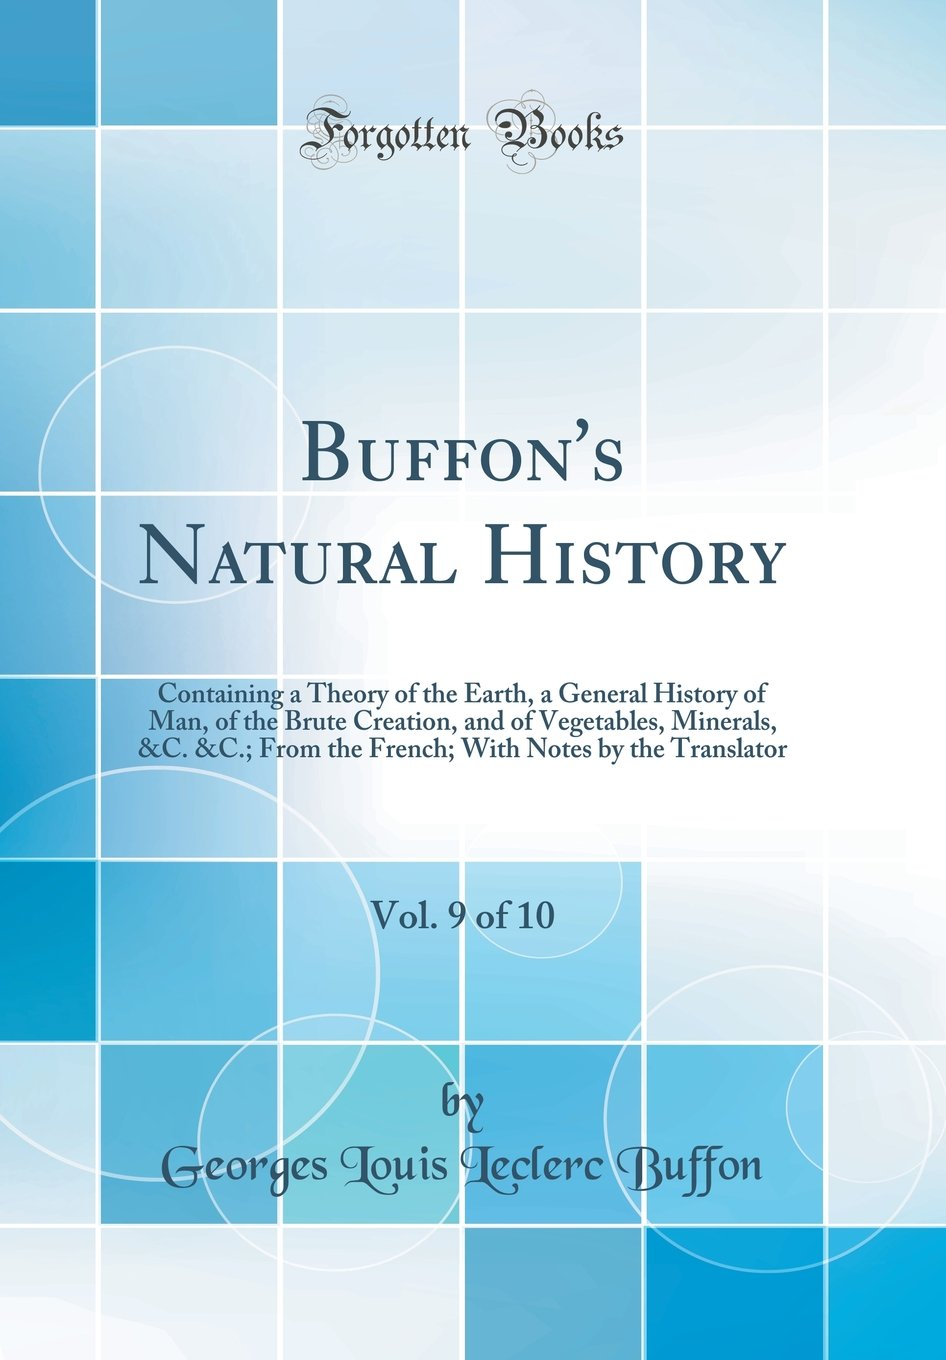 Download Buffon's Natural History, Vol. 9 of 10: Containing a Theory of the Earth, a General History of Man, of the Brute Creation, and of Vegetables, ... Notes by the Translator (Classic Reprint) pdf epub